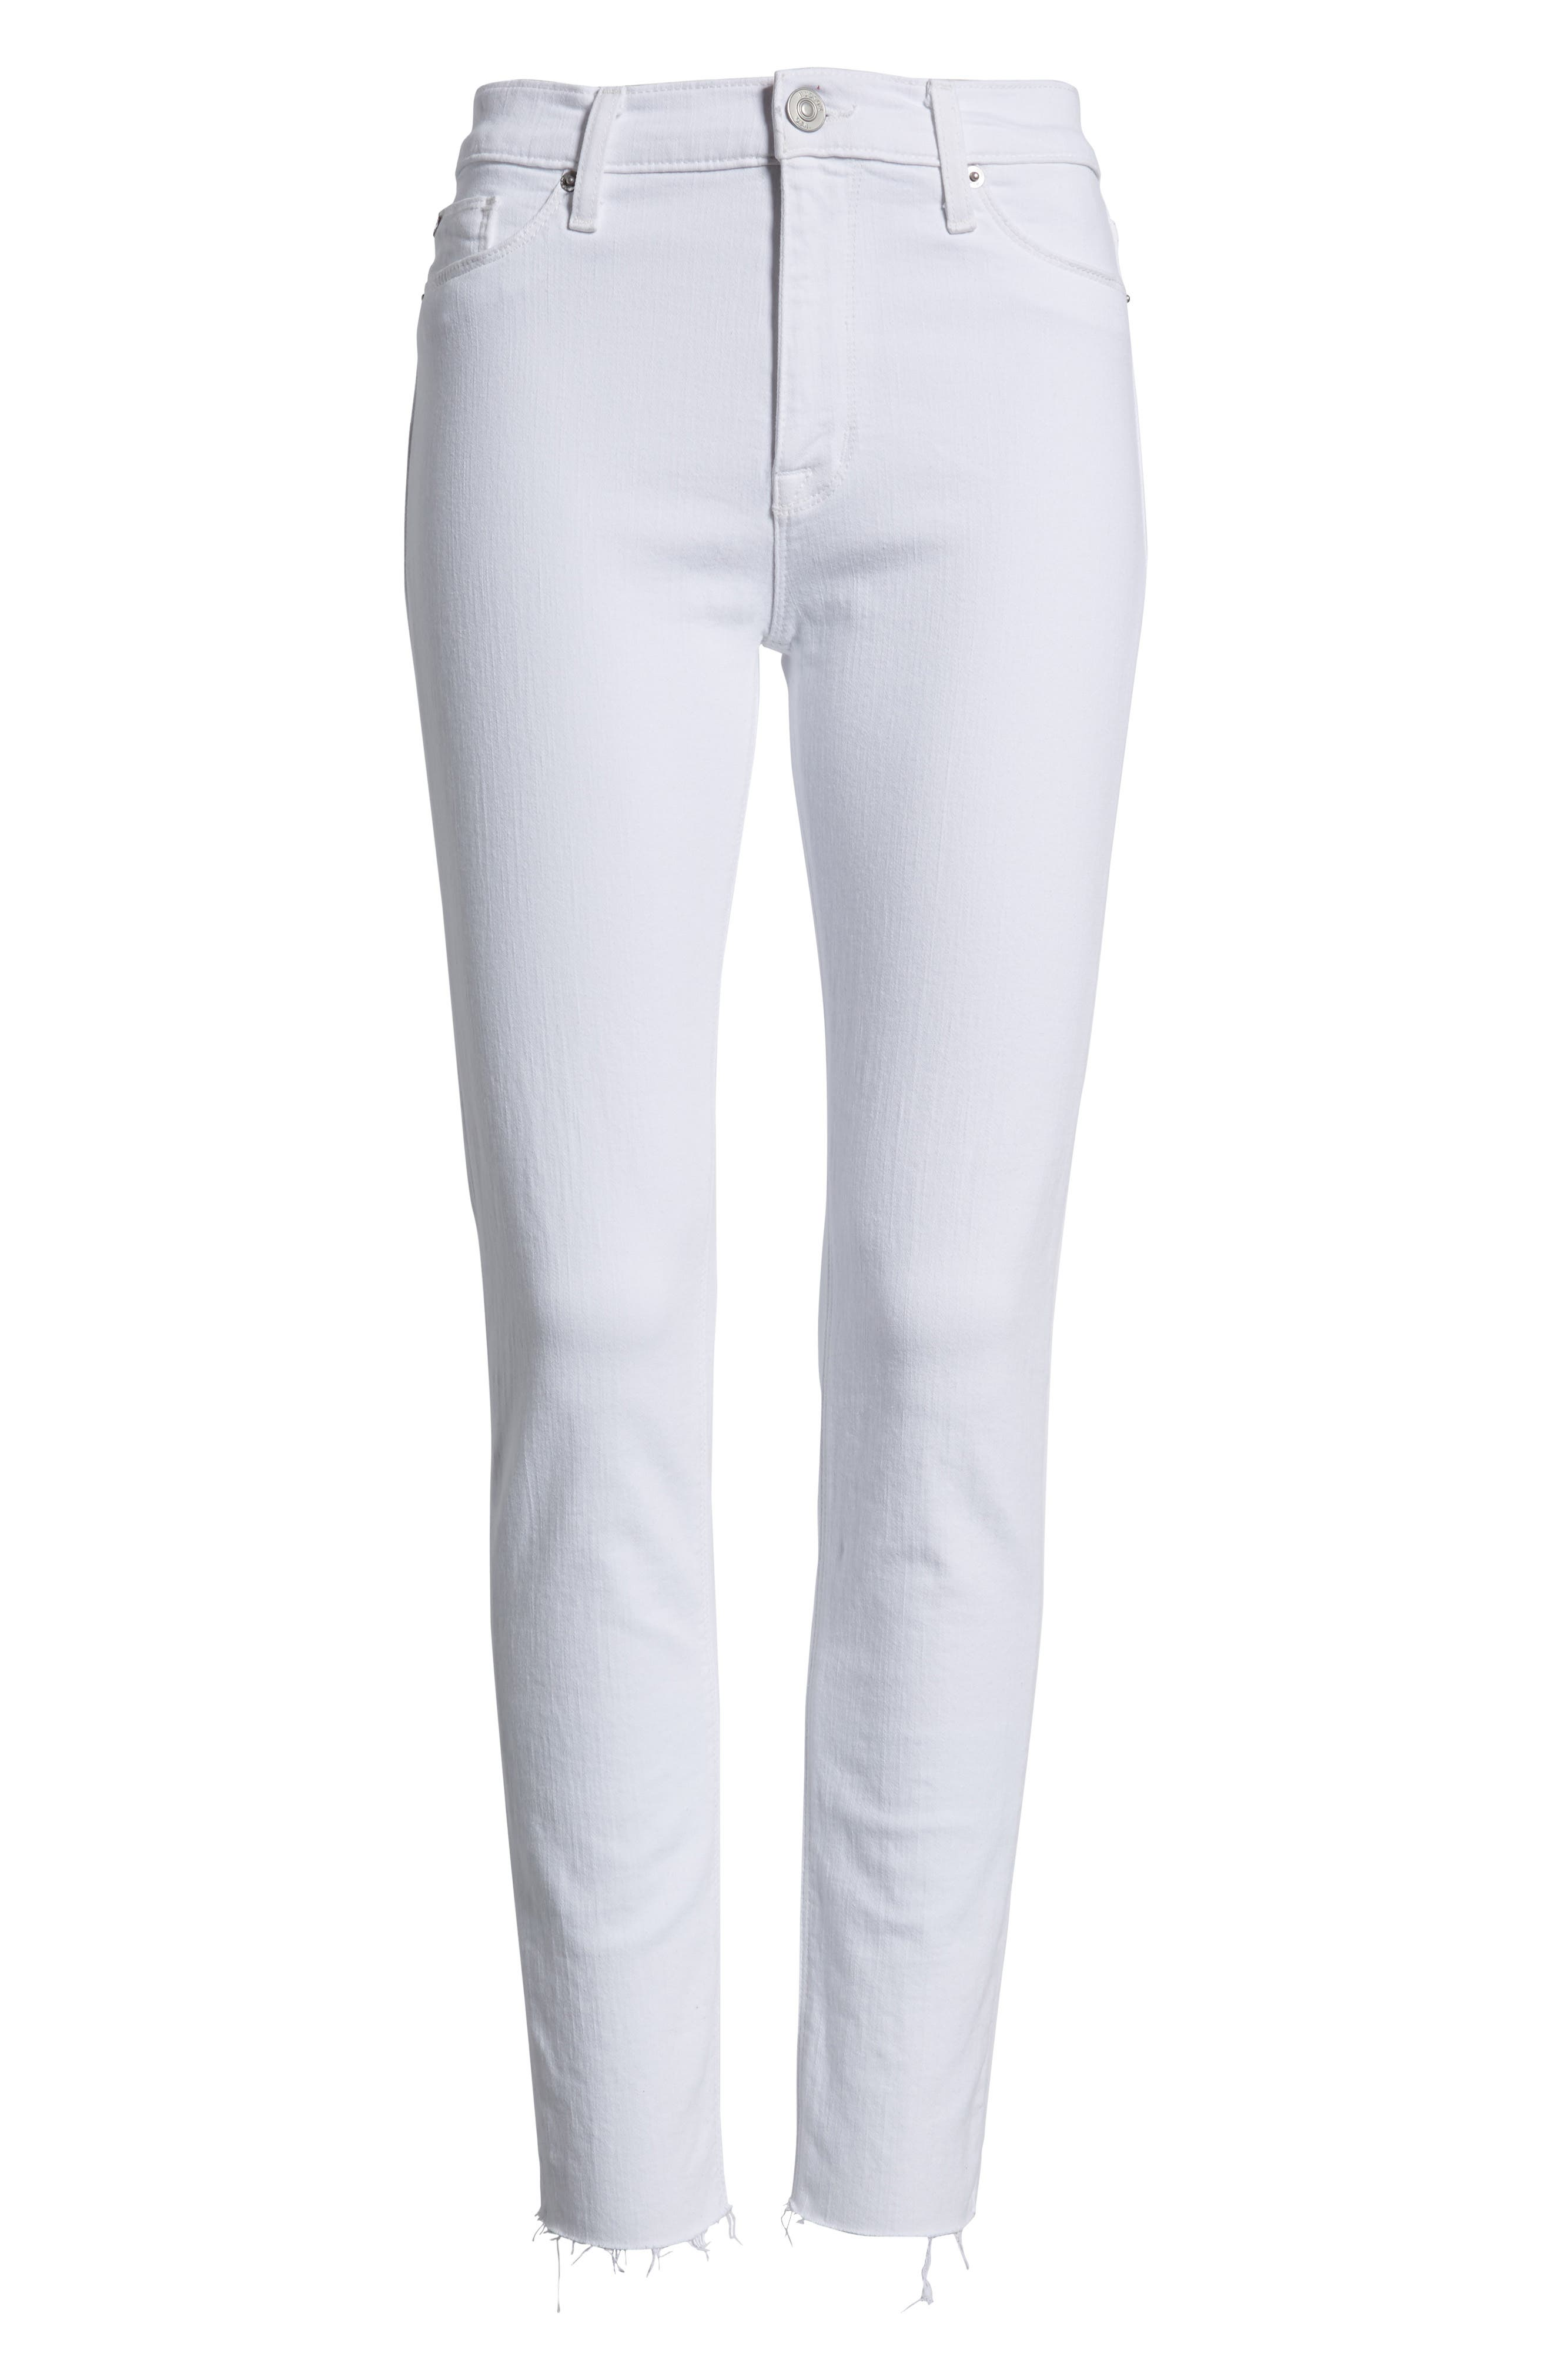 Barbara High Waist Raw Hem Ankle Skinny Jeans,                             Alternate thumbnail 7, color,                             Optical White